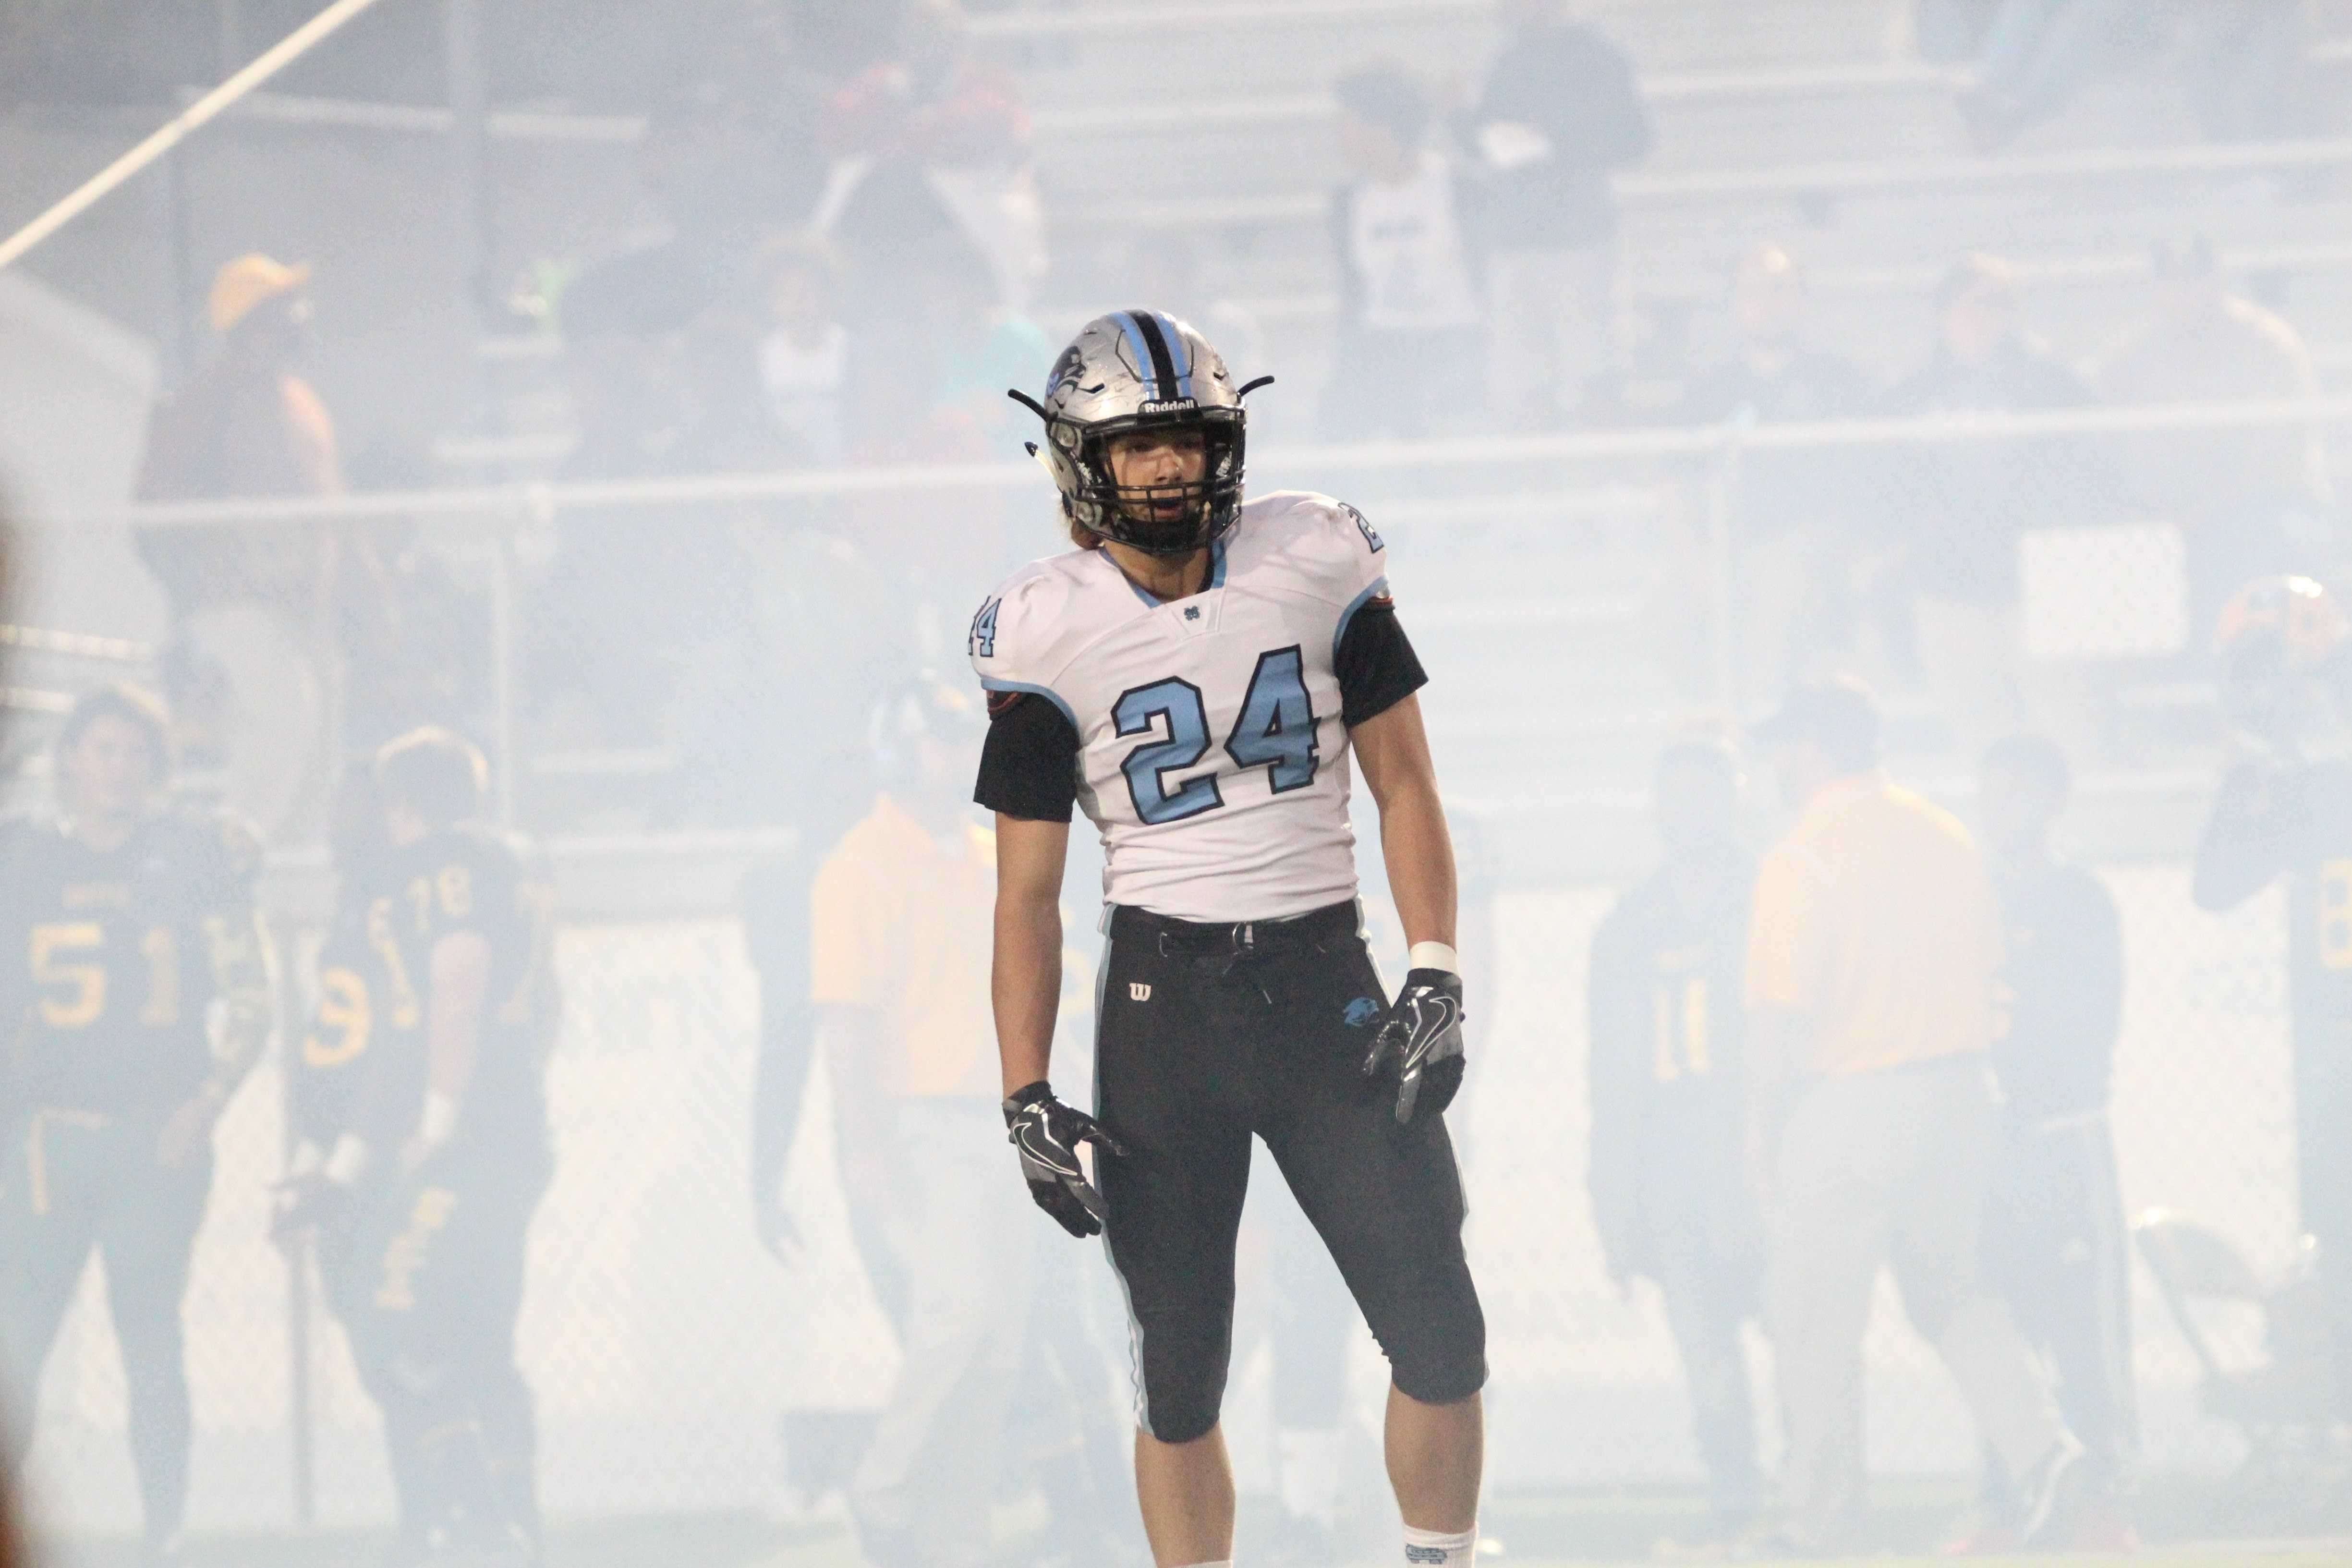 Junior defensive end Coltin Houser lines up for the opening kickoff against the Bears. The game featured two offenses that combined for over 1,000 total yards.